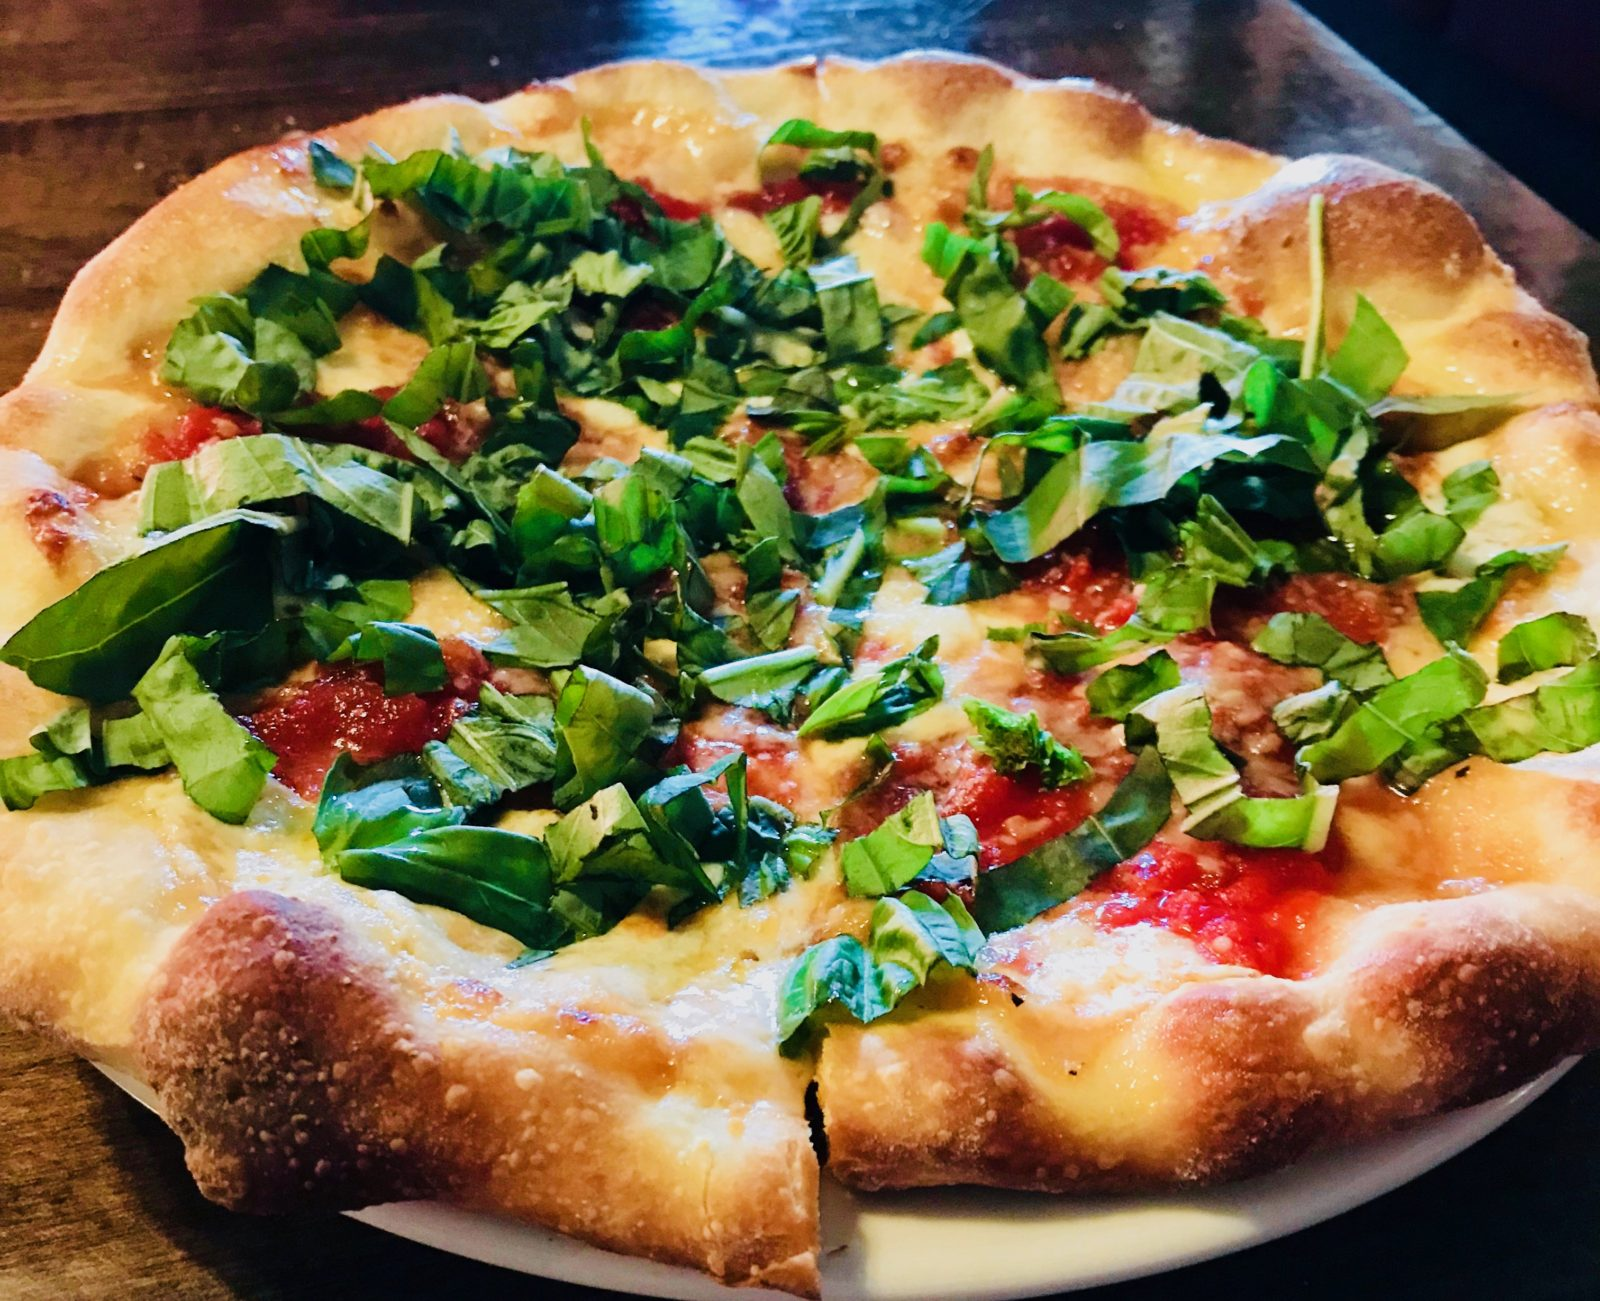 Pick of the Week - Rosa's Pizzeria - Margherita Pizza